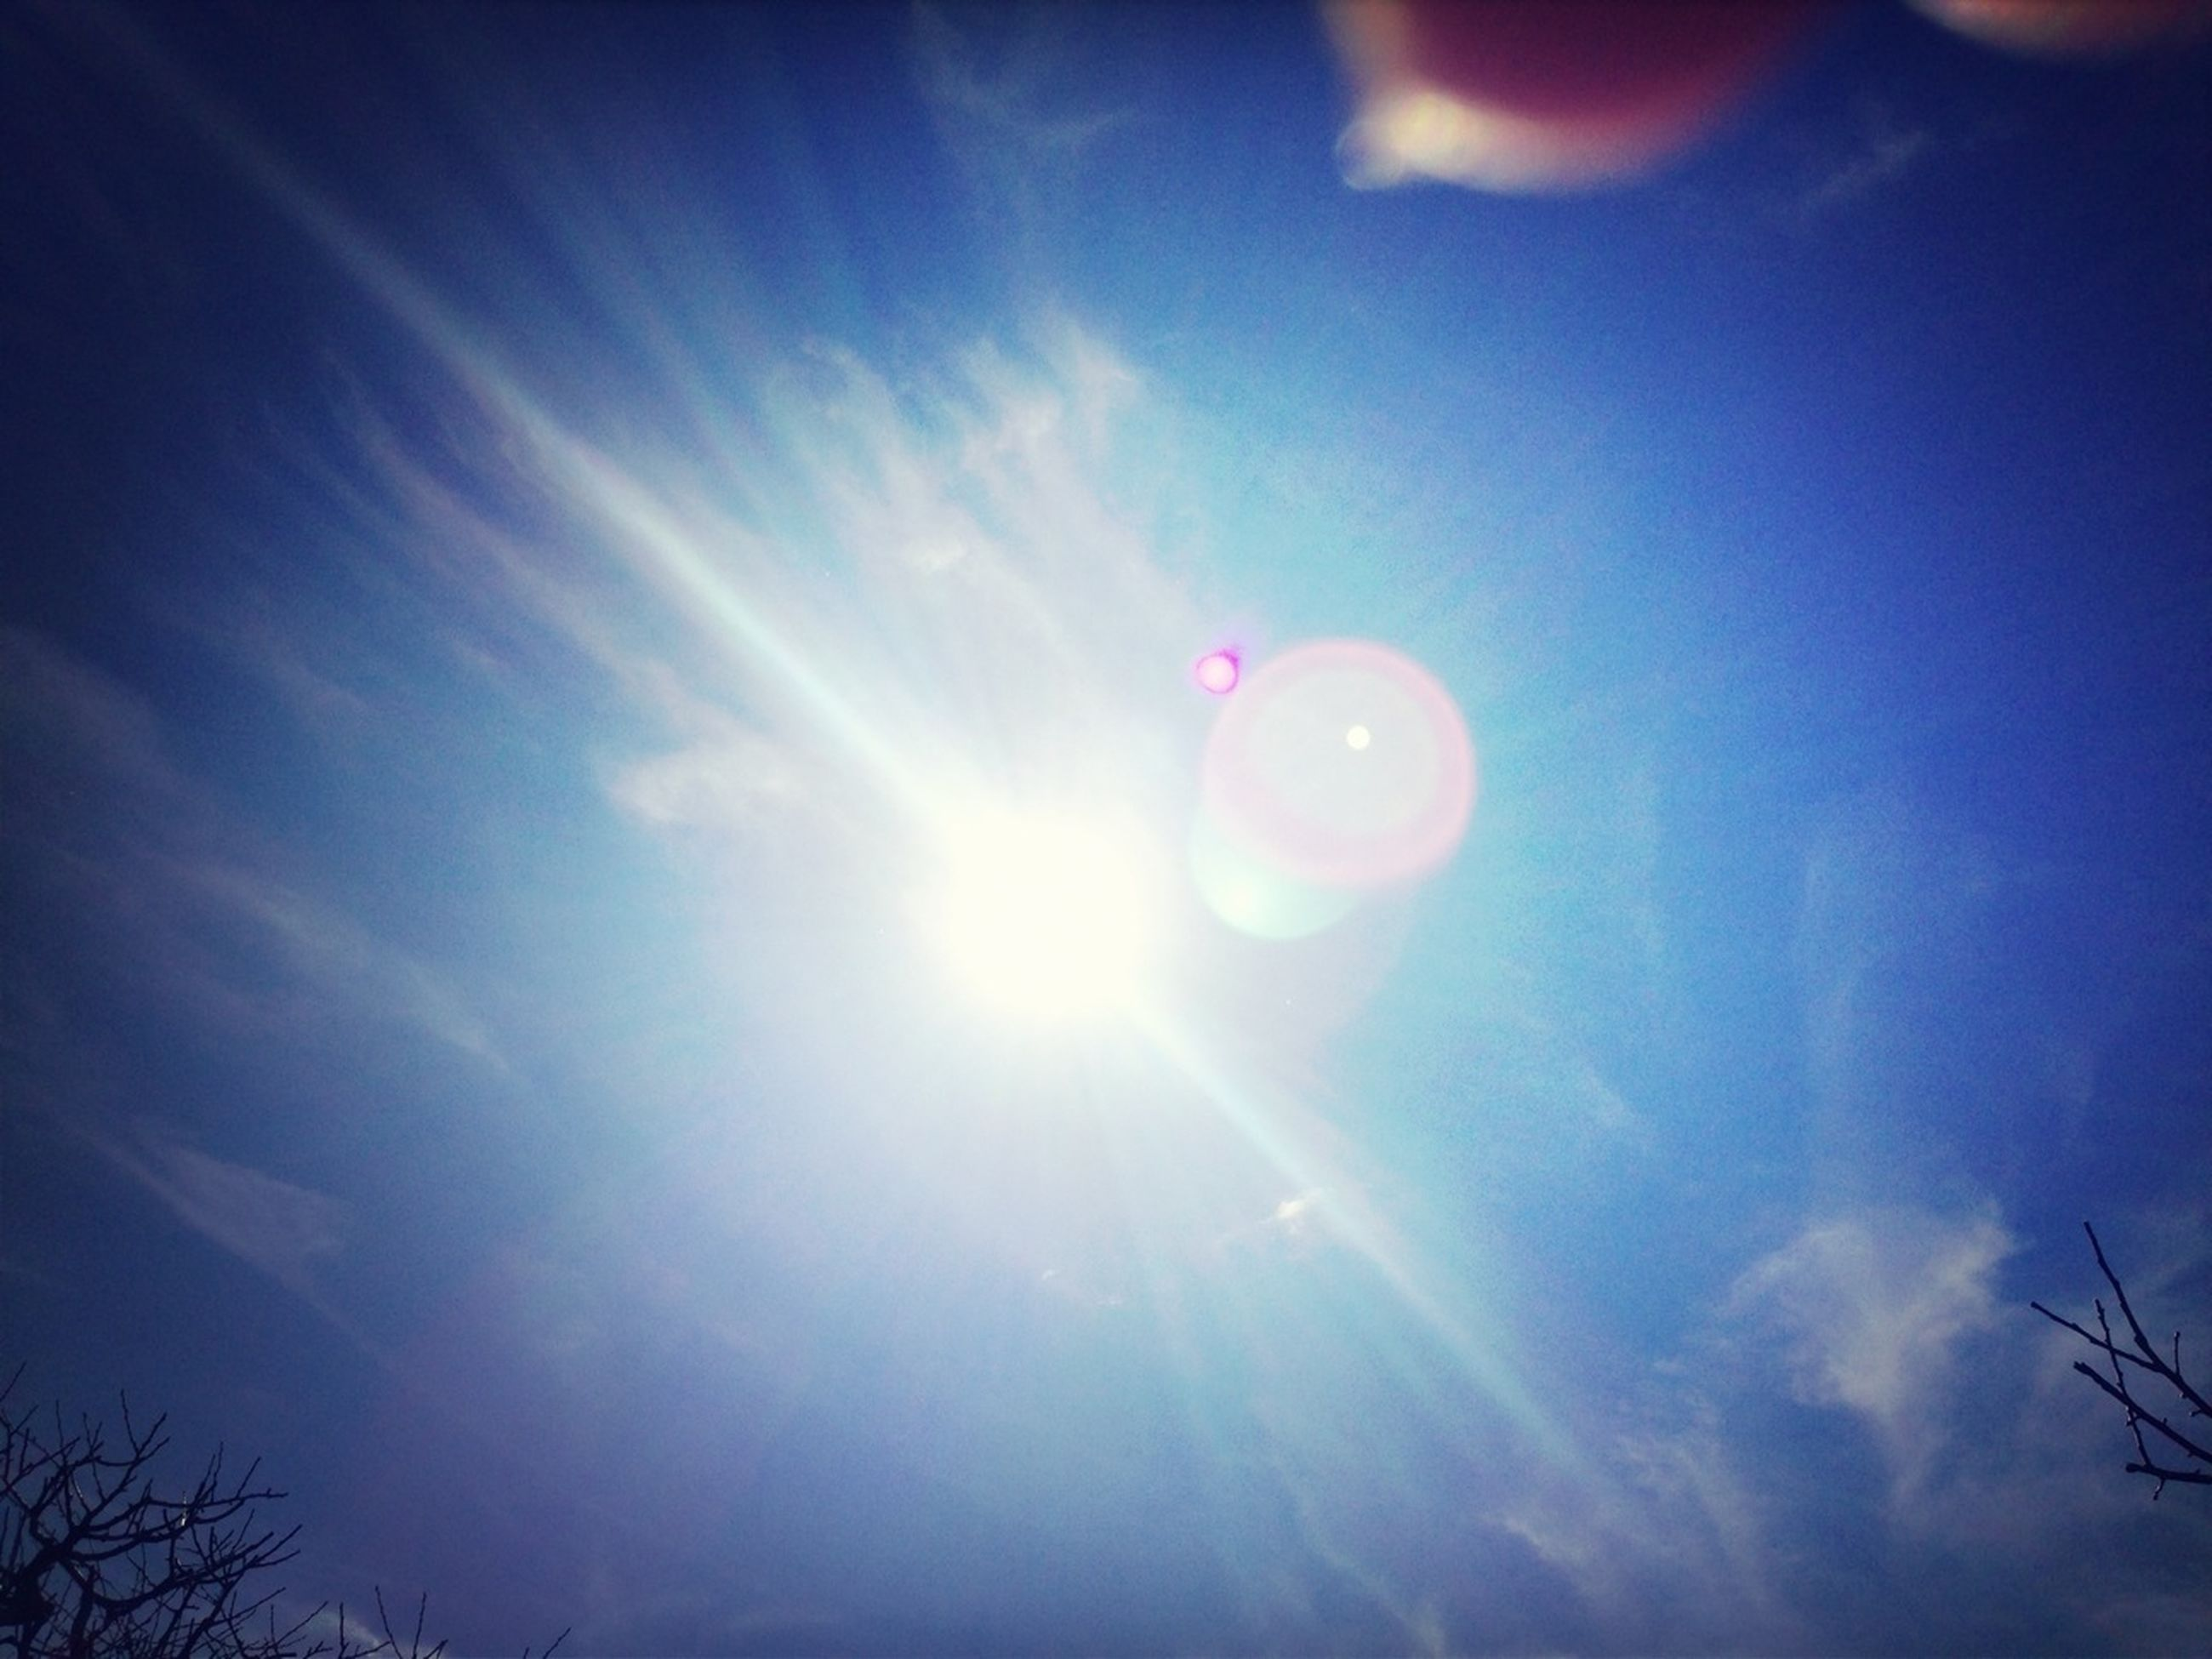 low angle view, sun, sky, lens flare, sunbeam, cloud - sky, blue, beauty in nature, sunlight, tranquility, scenics, nature, bright, tranquil scene, outdoors, sky only, cloud, idyllic, no people, silhouette